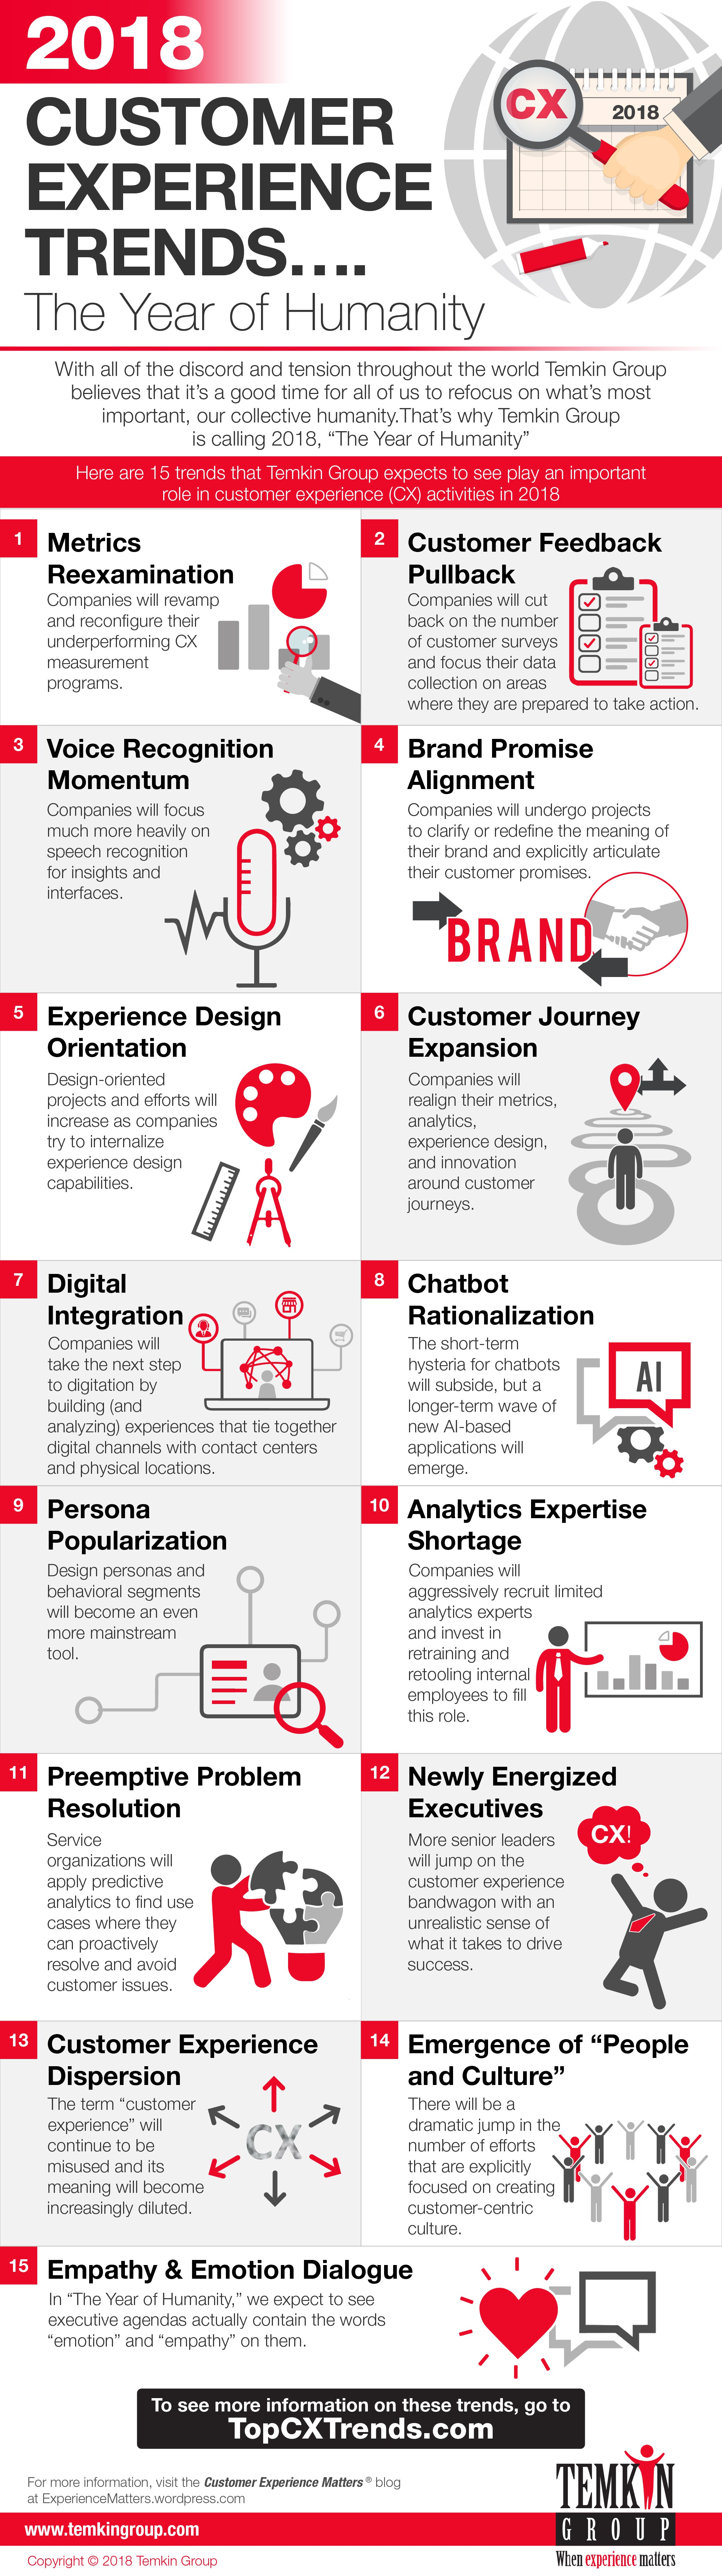 customer-experience-trends-infographic